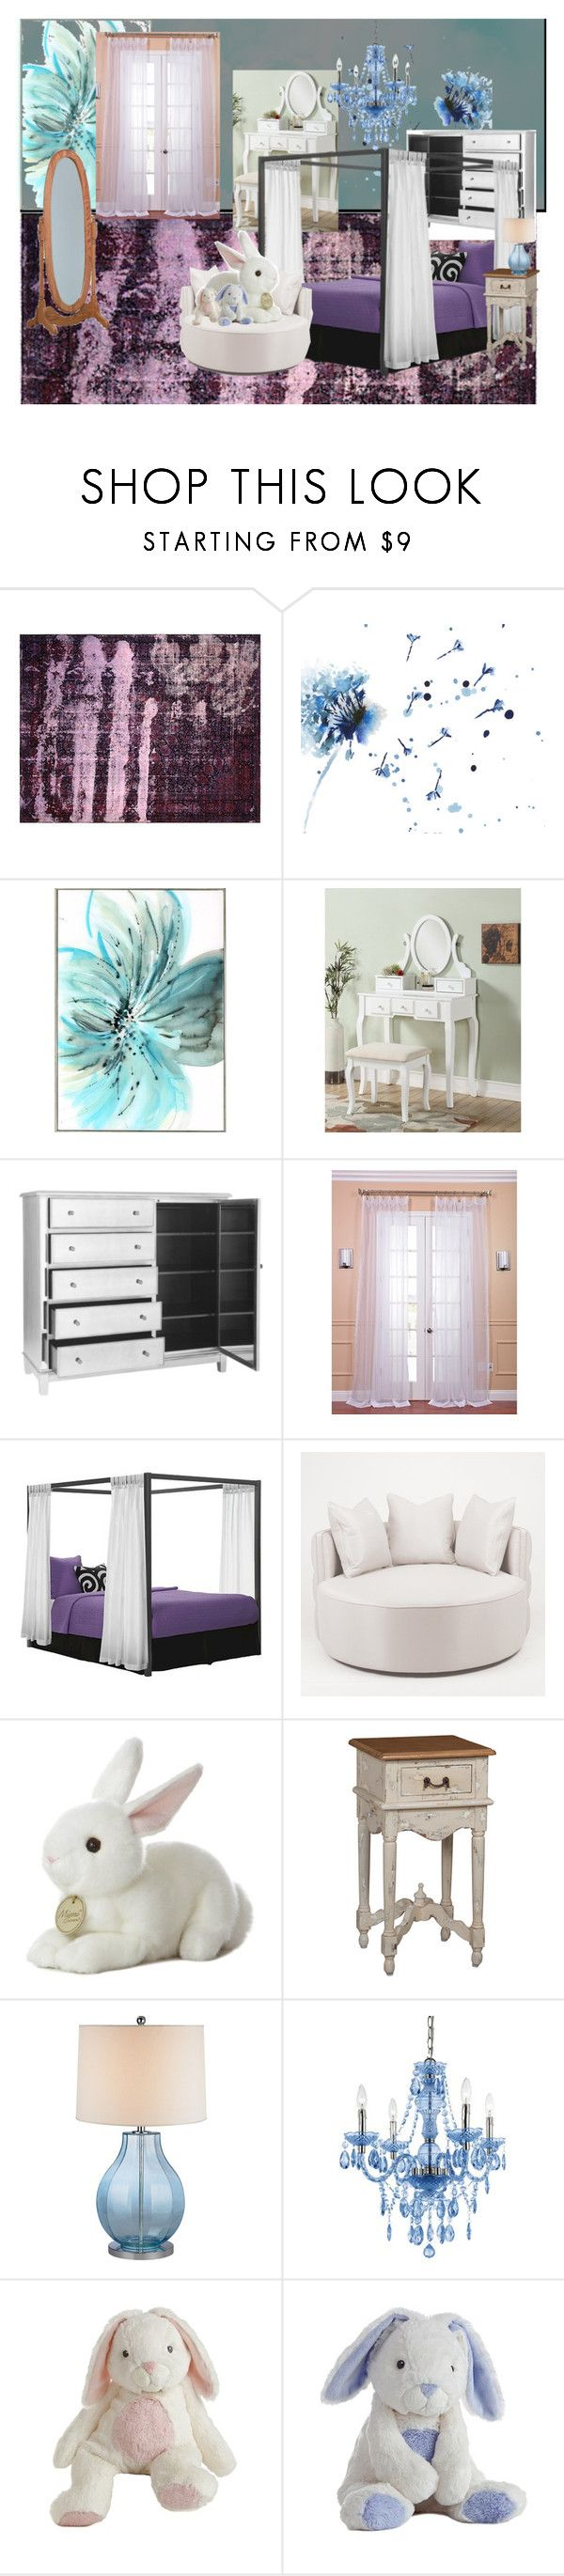 """""""Girls bedroom"""" by gemin ❤ liked on Polyvore featuring interior, interiors, interior design, home, home decor, interior decorating, Nalbandian, Universal Lighting and Decor, Pier 1 Imports and EFF"""